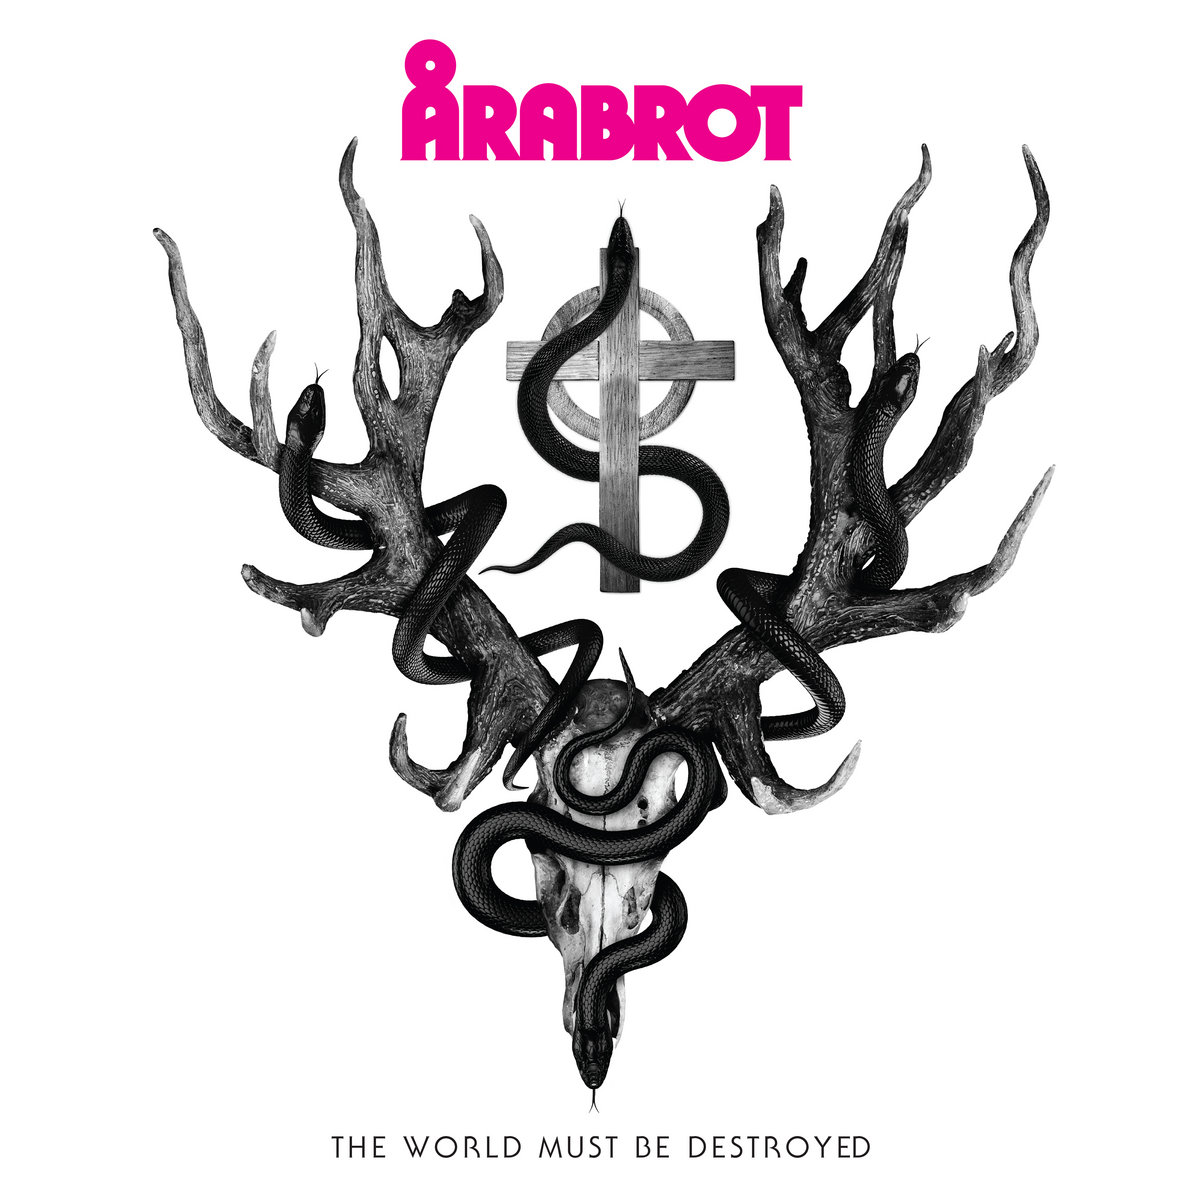 Årabrot – The World Must Be Destroyed